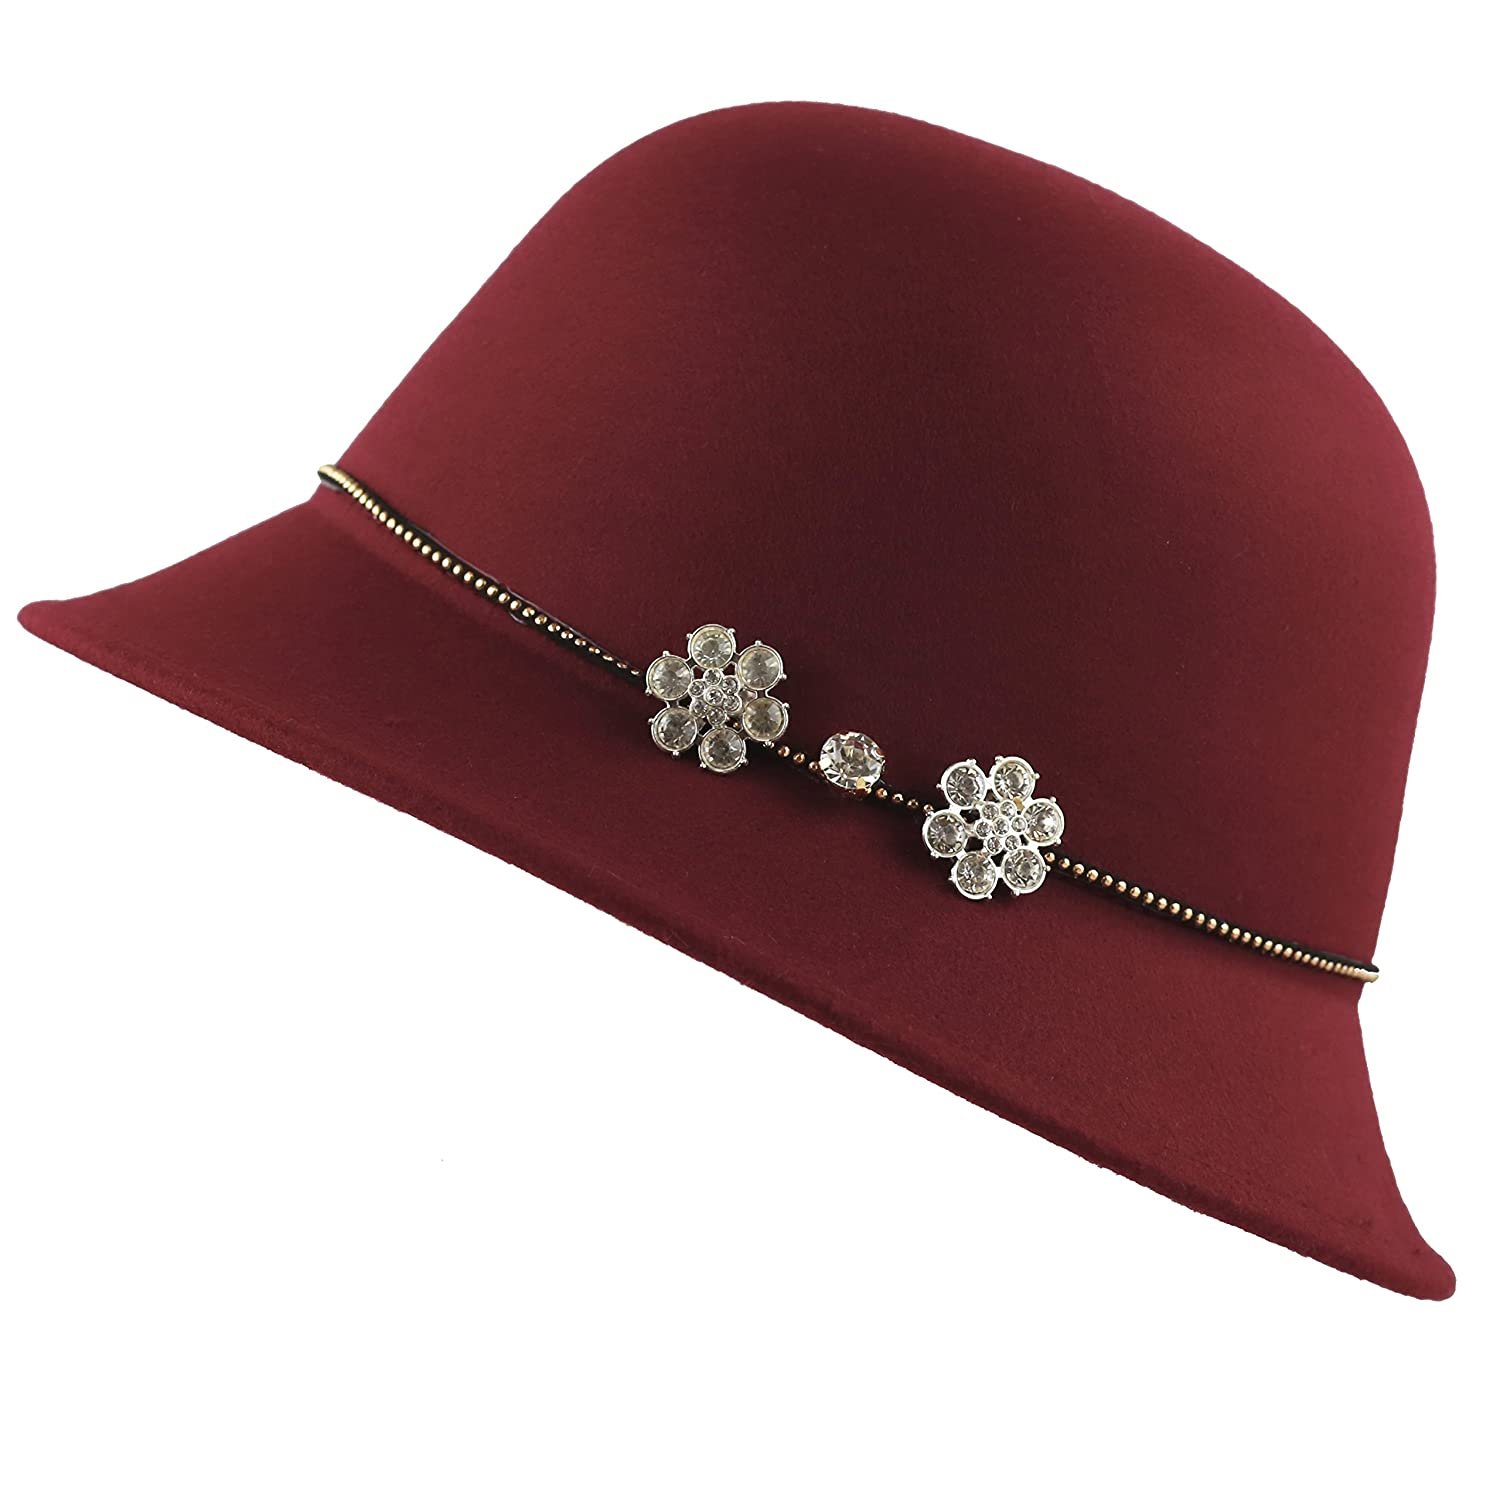 1920s Hat Styles for Women- History Beyond the Cloche Hat The Hat Depot Felt Cloche Winter Hat with Studded band Rhinestone Flower $18.95 AT vintagedancer.com